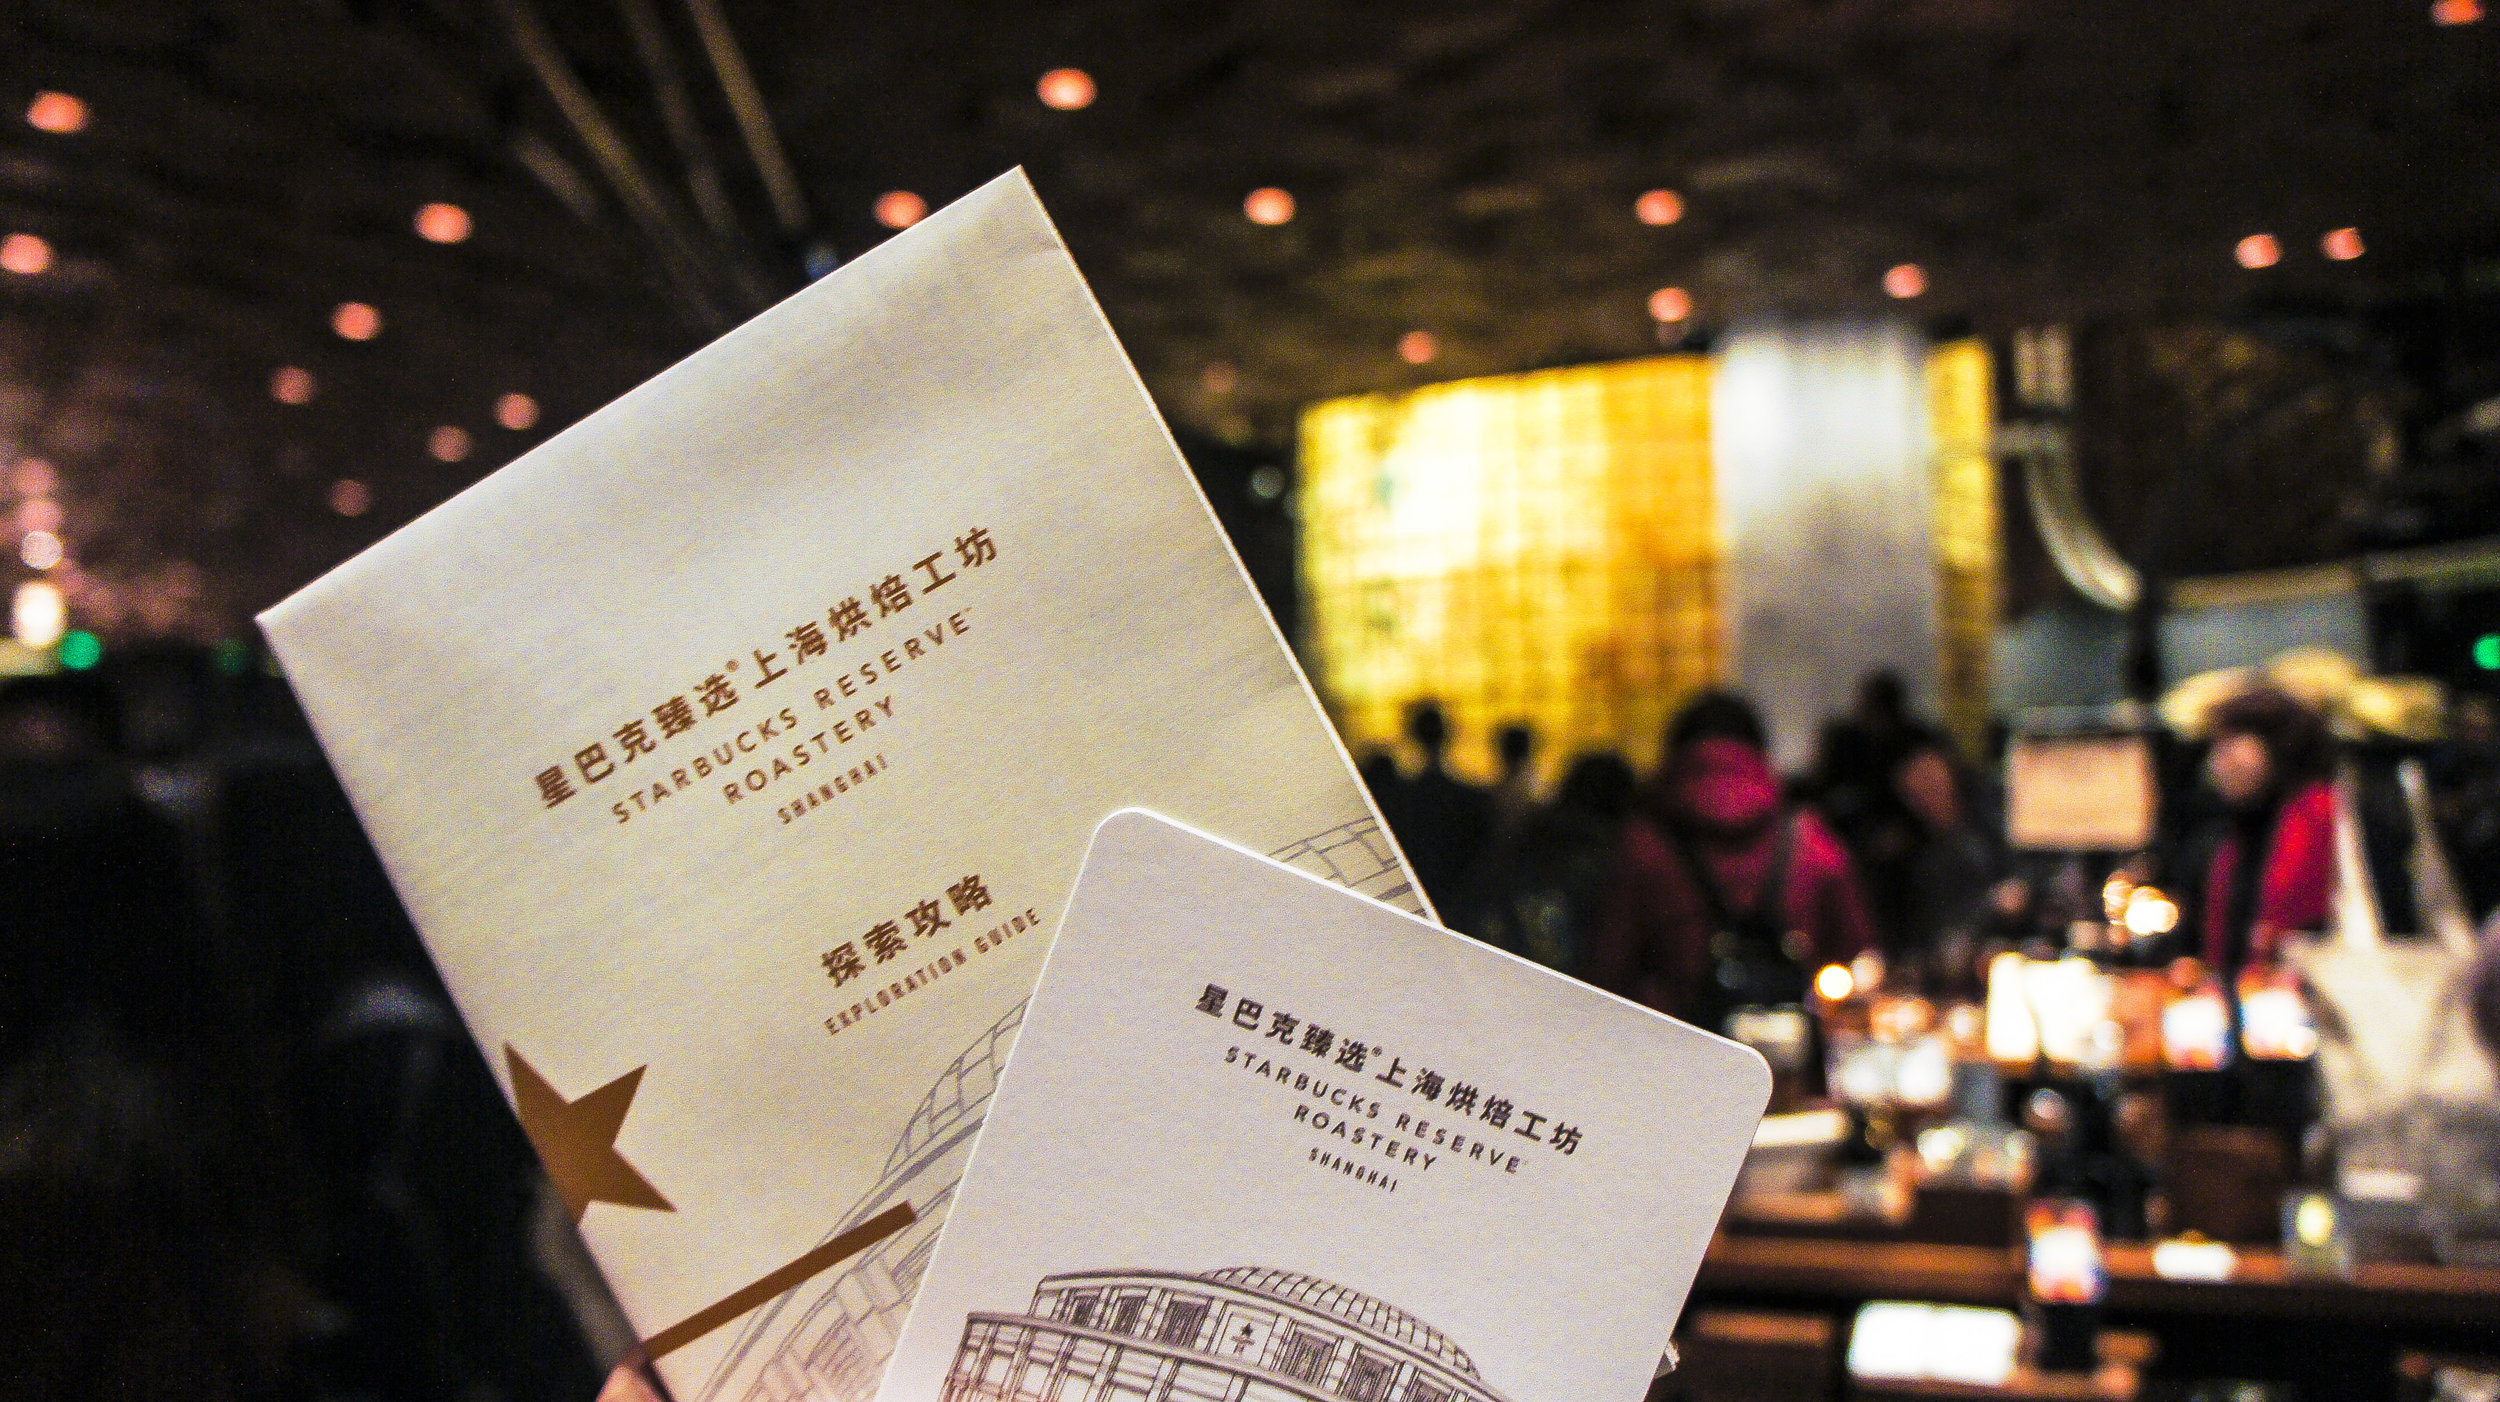 Shanghai Starbucks Reserve Roastery Exploration Guides.  Photo credit: Zoe Yeh.